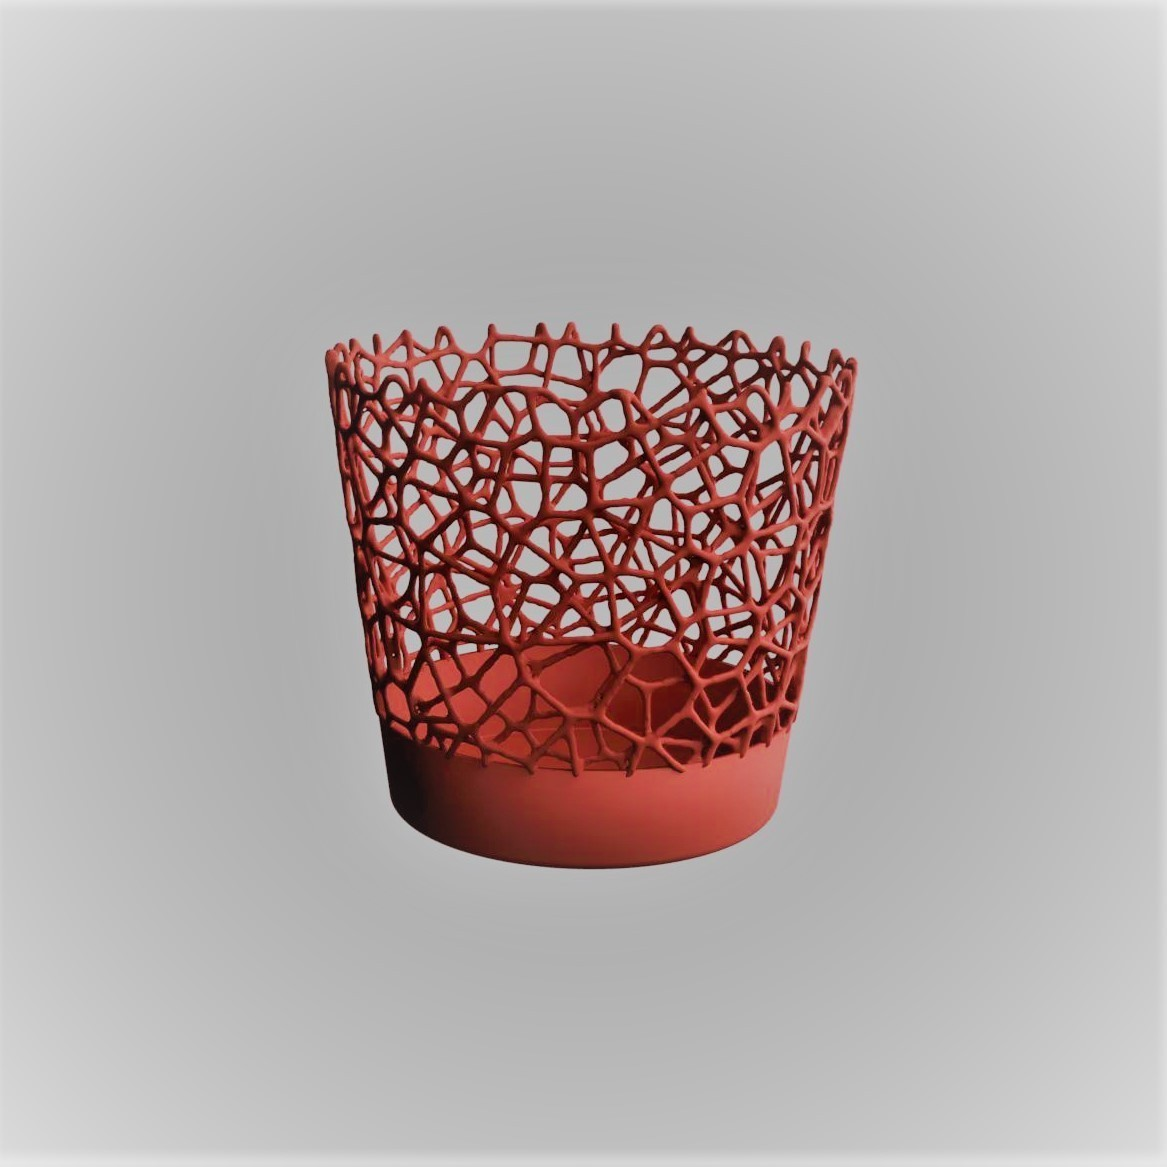 18226470261.jpg Download STL file Cache pot orchid / orchid pot • Object to 3D print, FIL3D